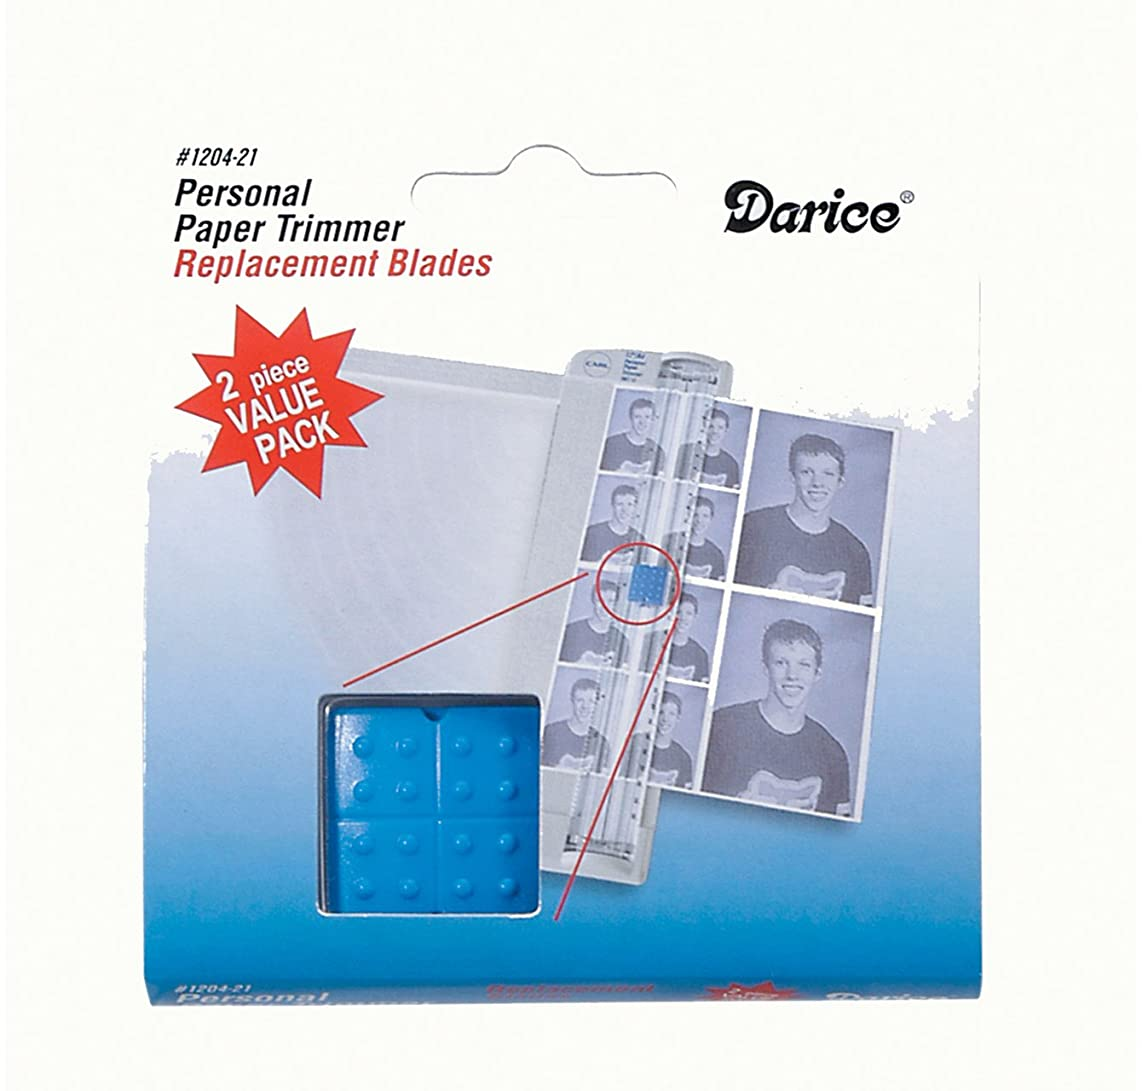 Darice Trimmer Replacement BLADES - Twin Pack